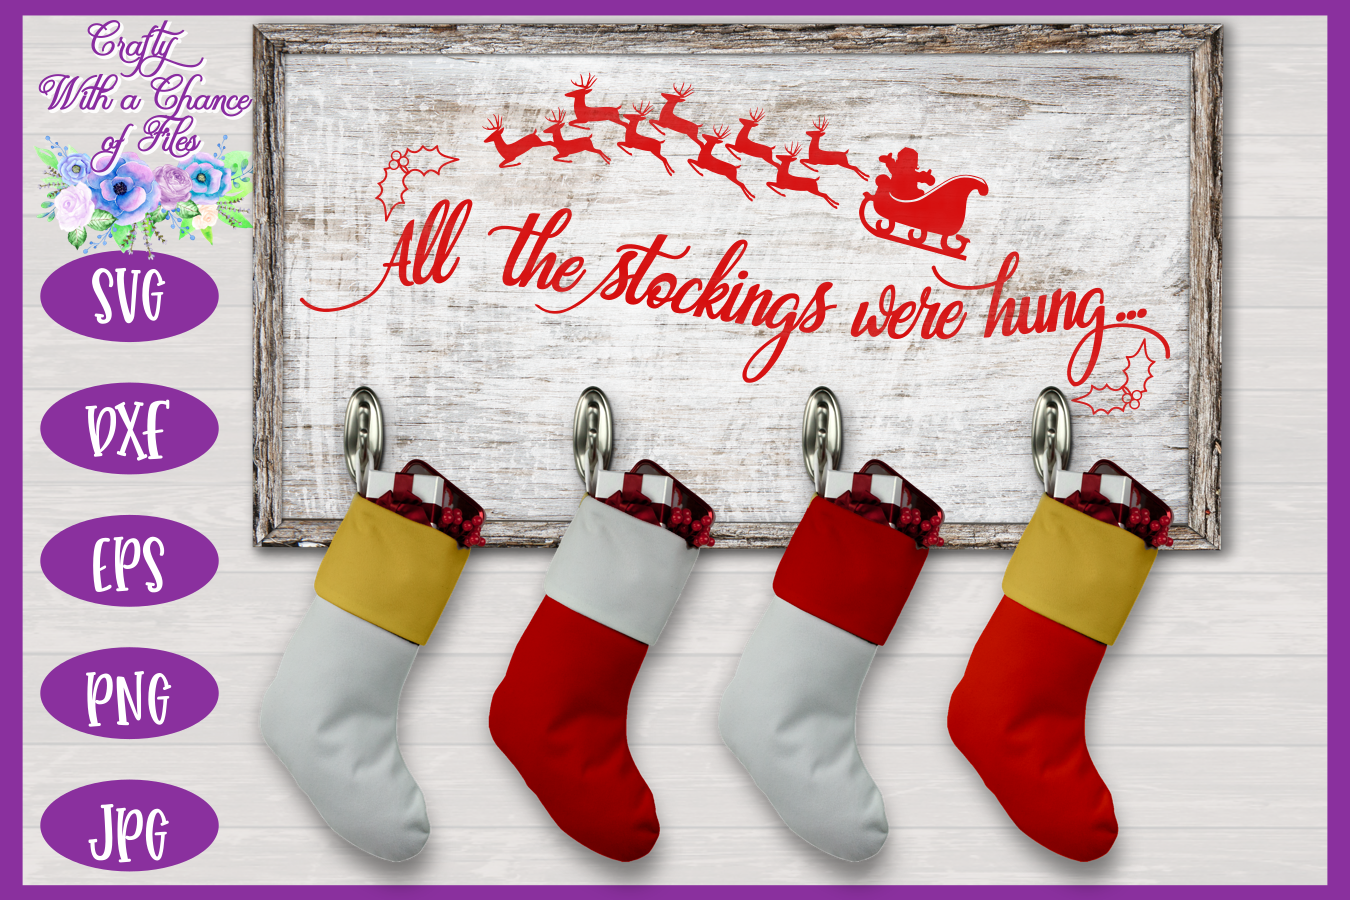 Christmas SVG - Stockings Were Hung Stocking Sign Design example image 2